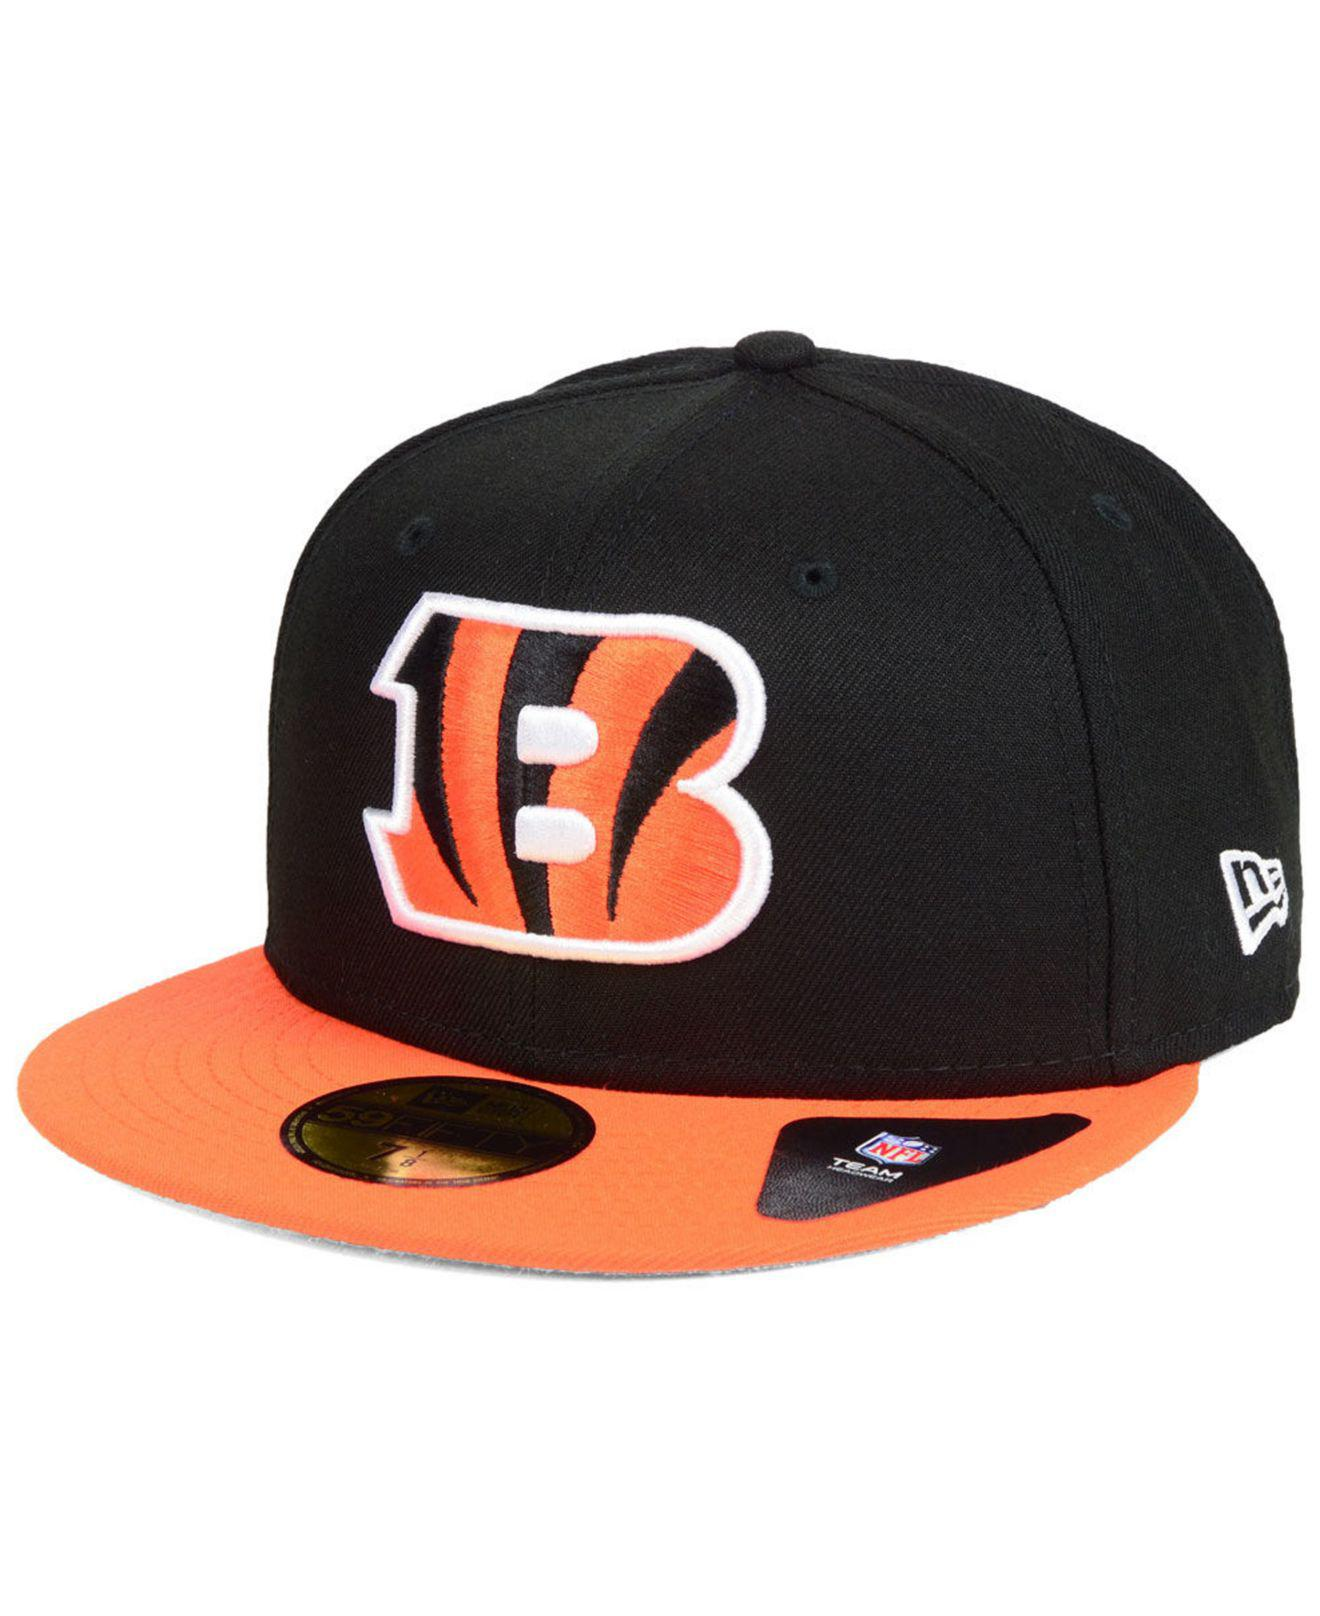 brand new 705cf 7239a KTZ. Men s Black Cincinnati Bengals Team Basic 59fifty Fitted Cap